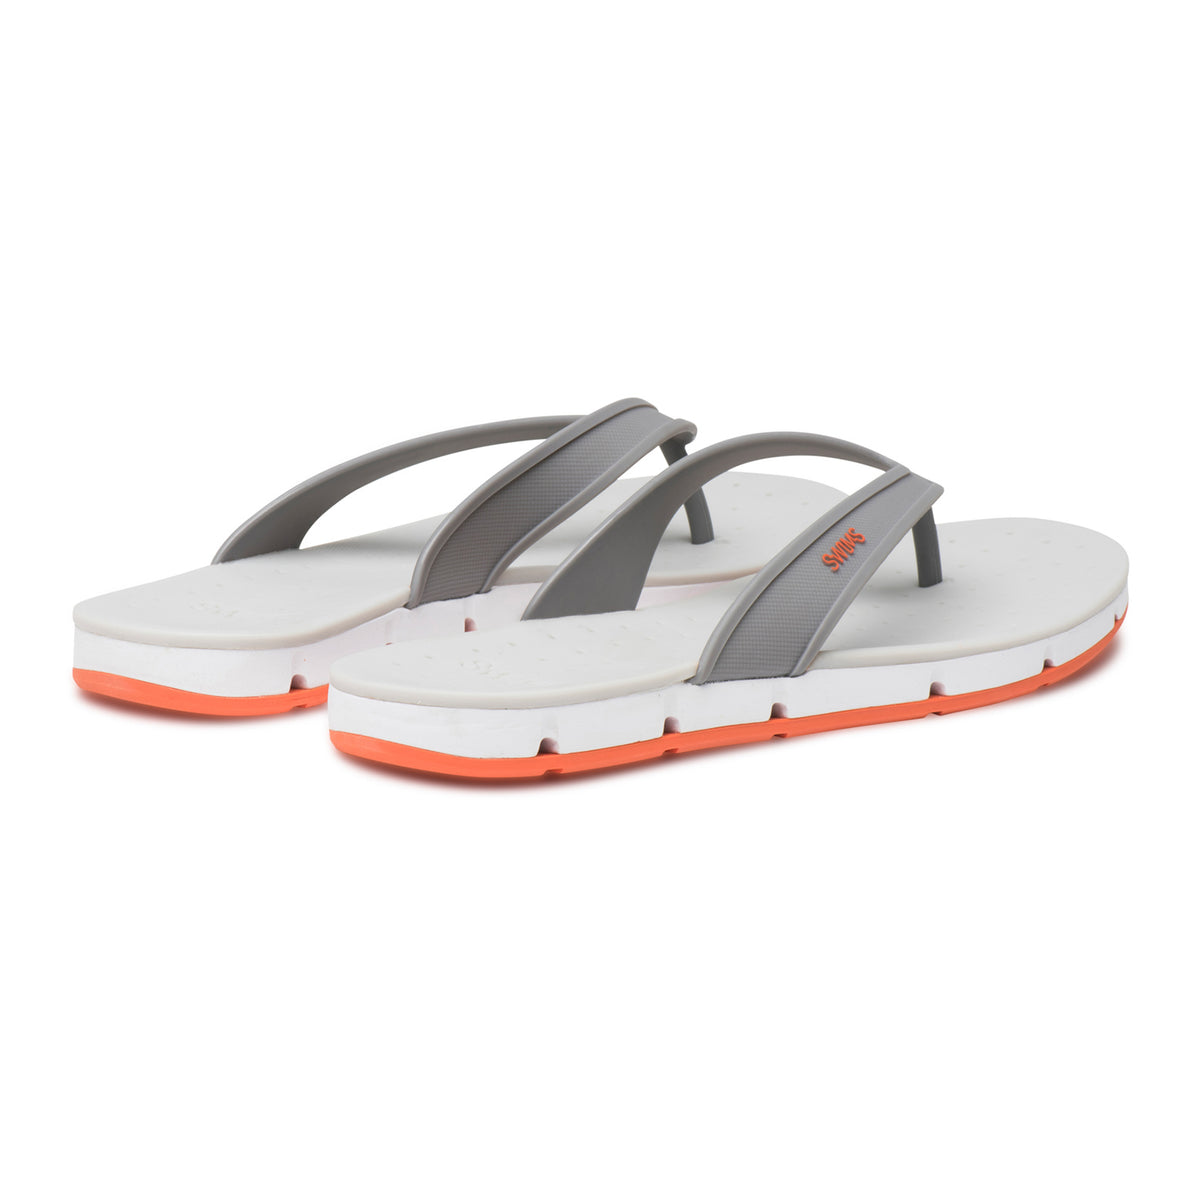 Breeze Thong Sandal - background::white,variant::Gray/White/Orange